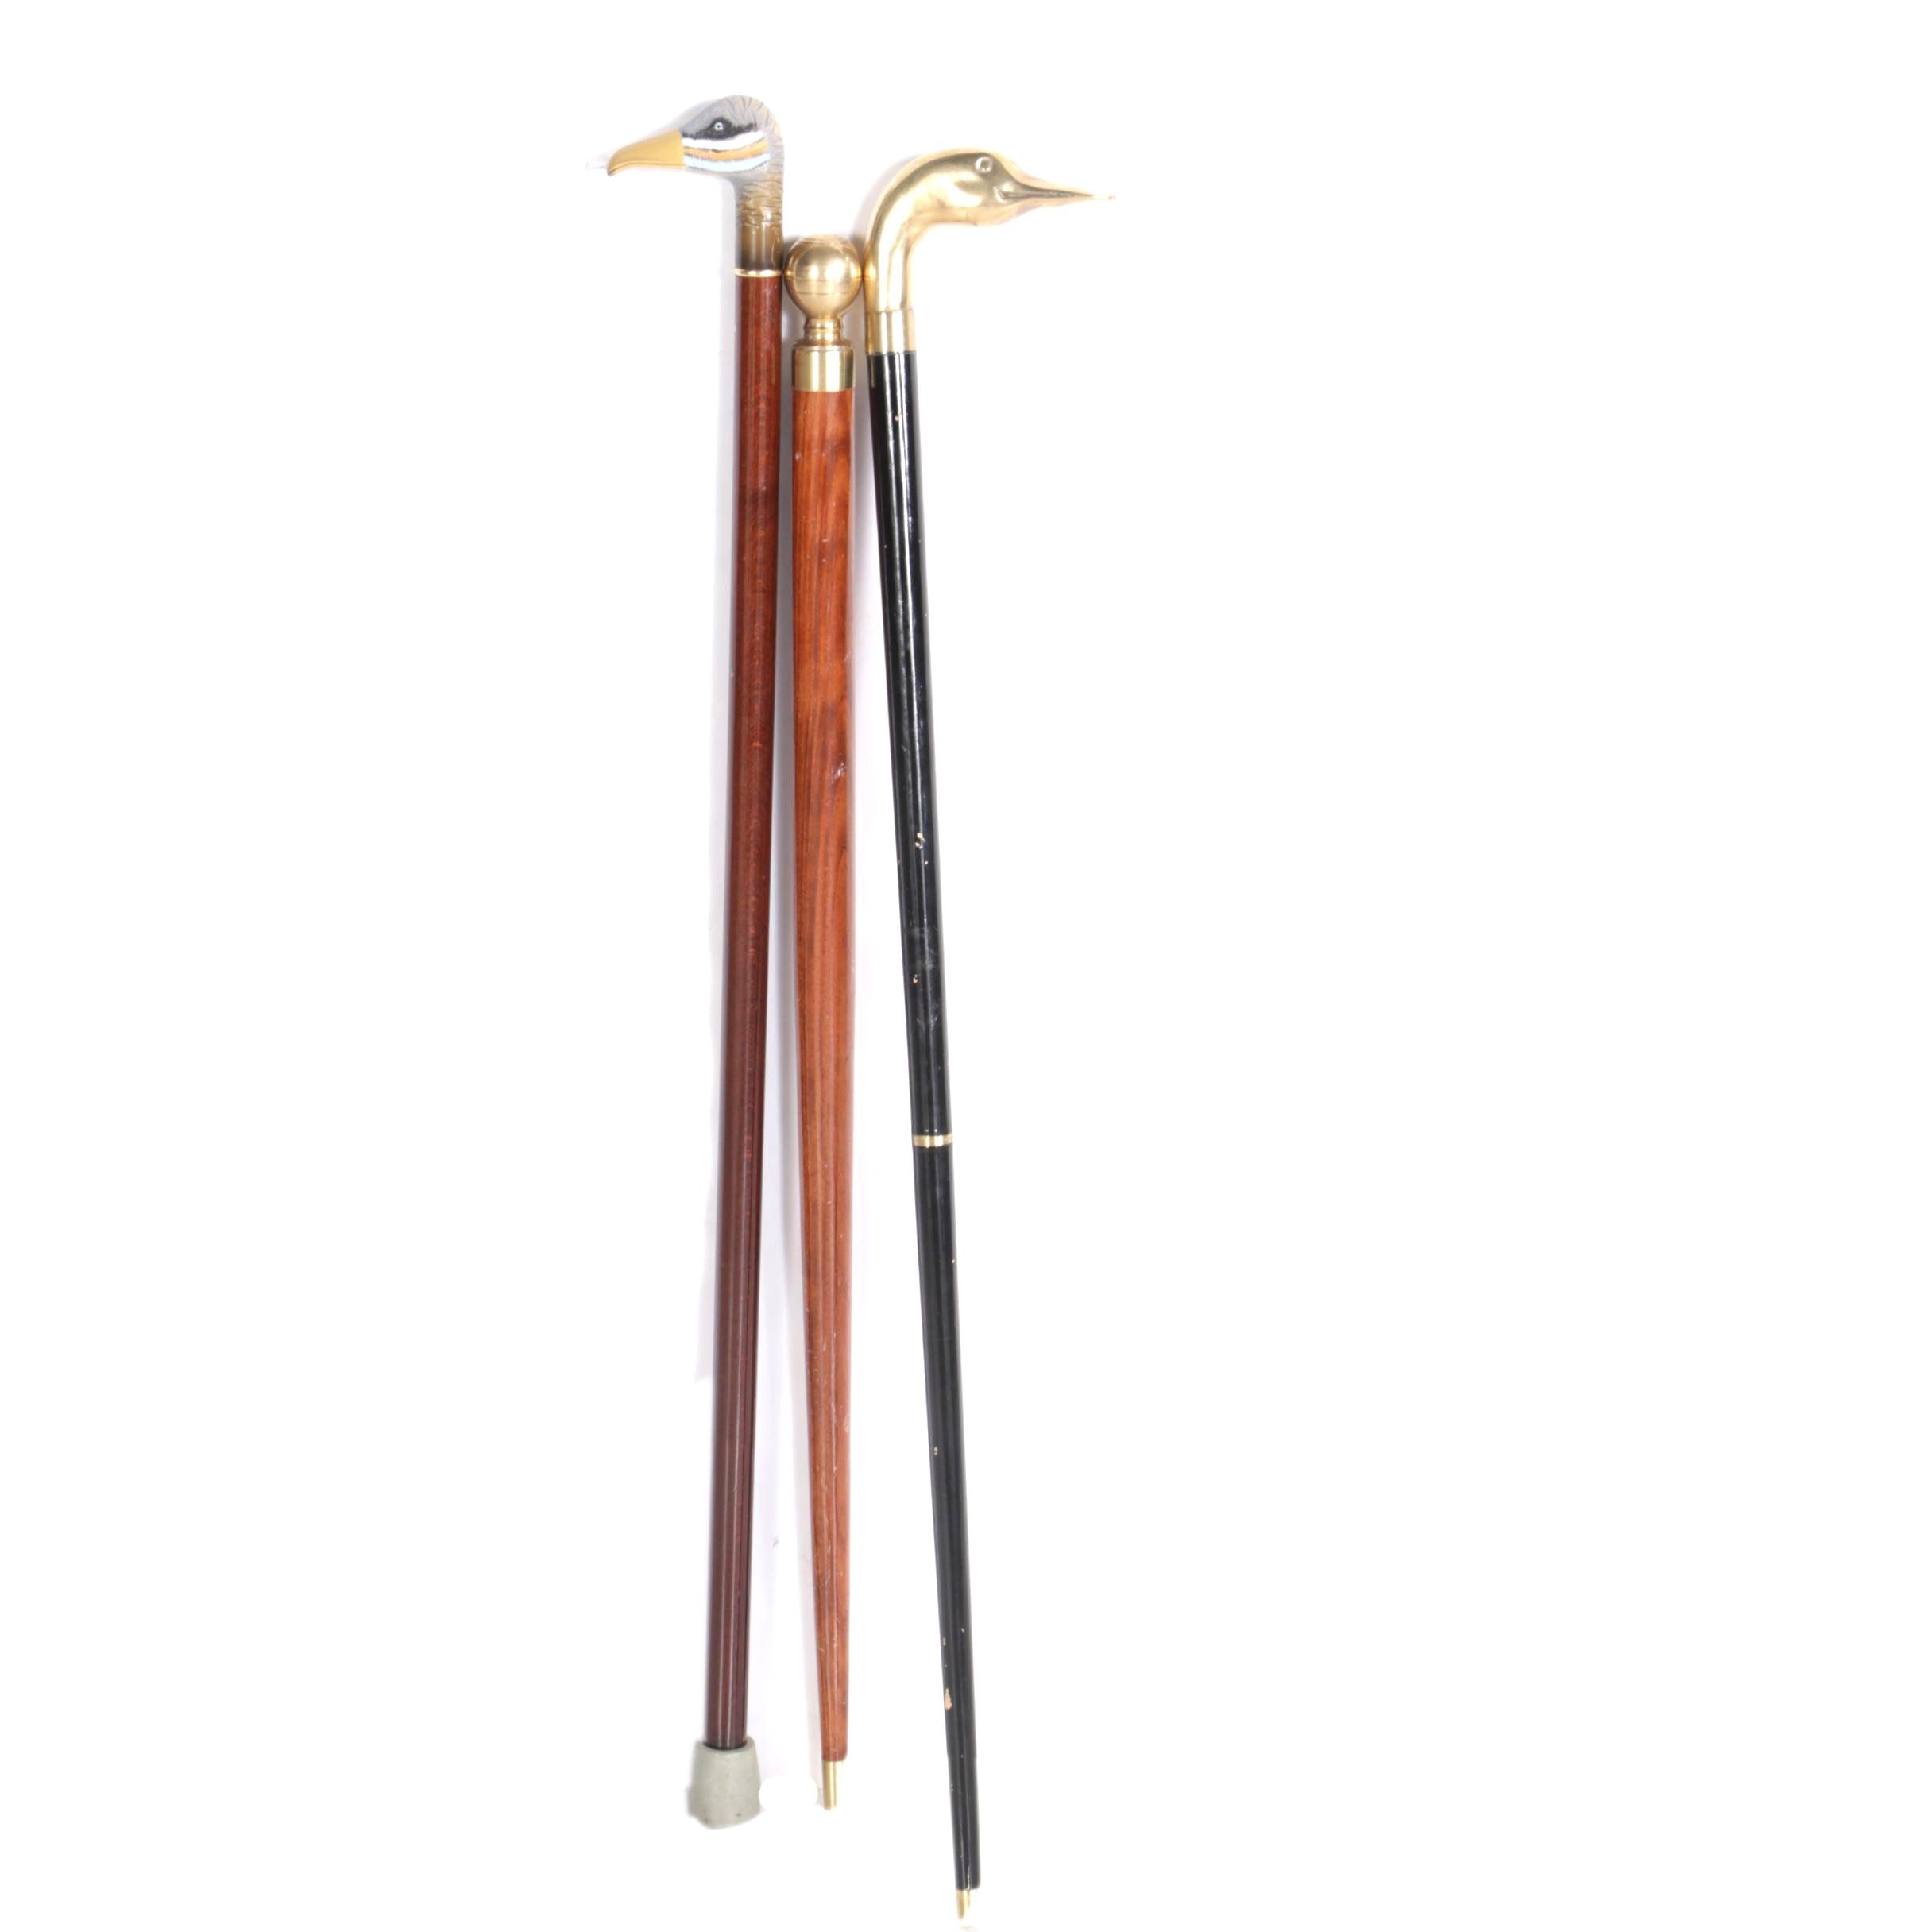 Canes Including Wolf Headed and Bird Head Handles